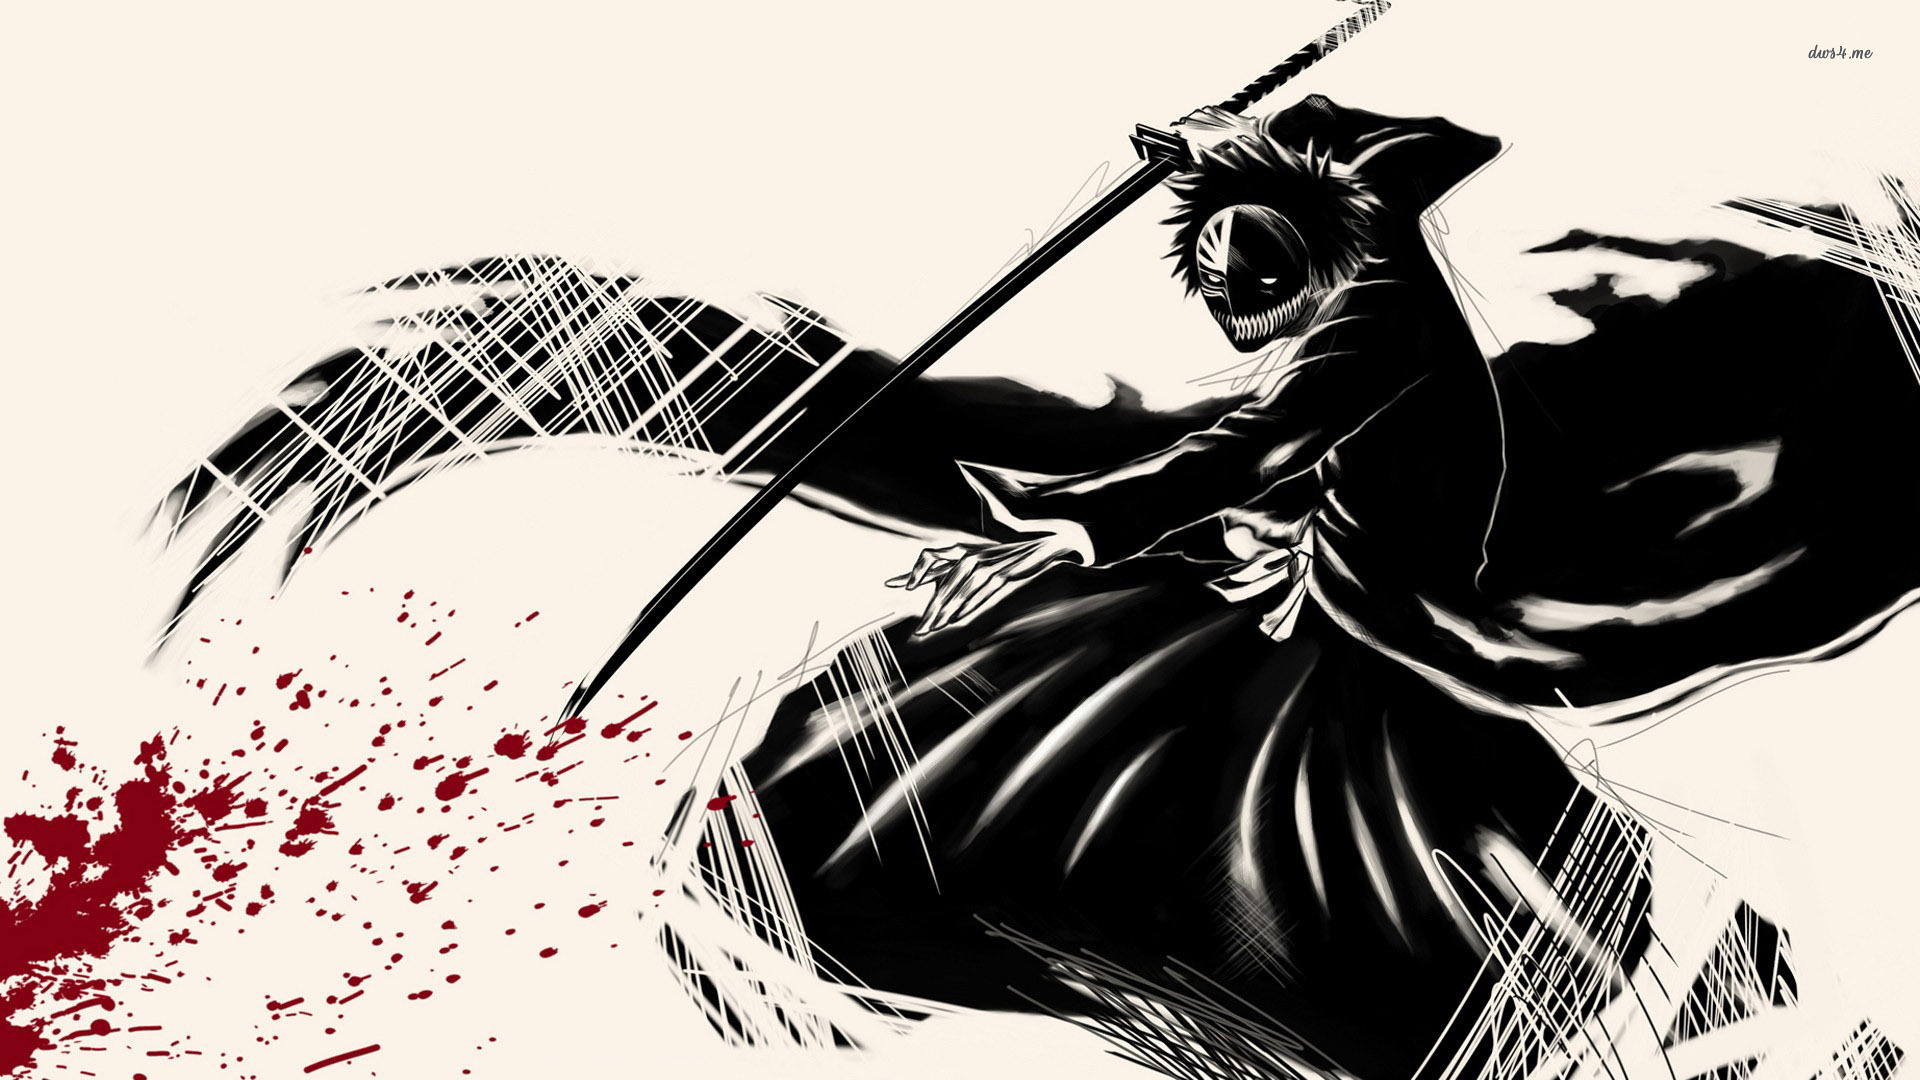 bleach wallpaper 1920 x 1080 - photo #6